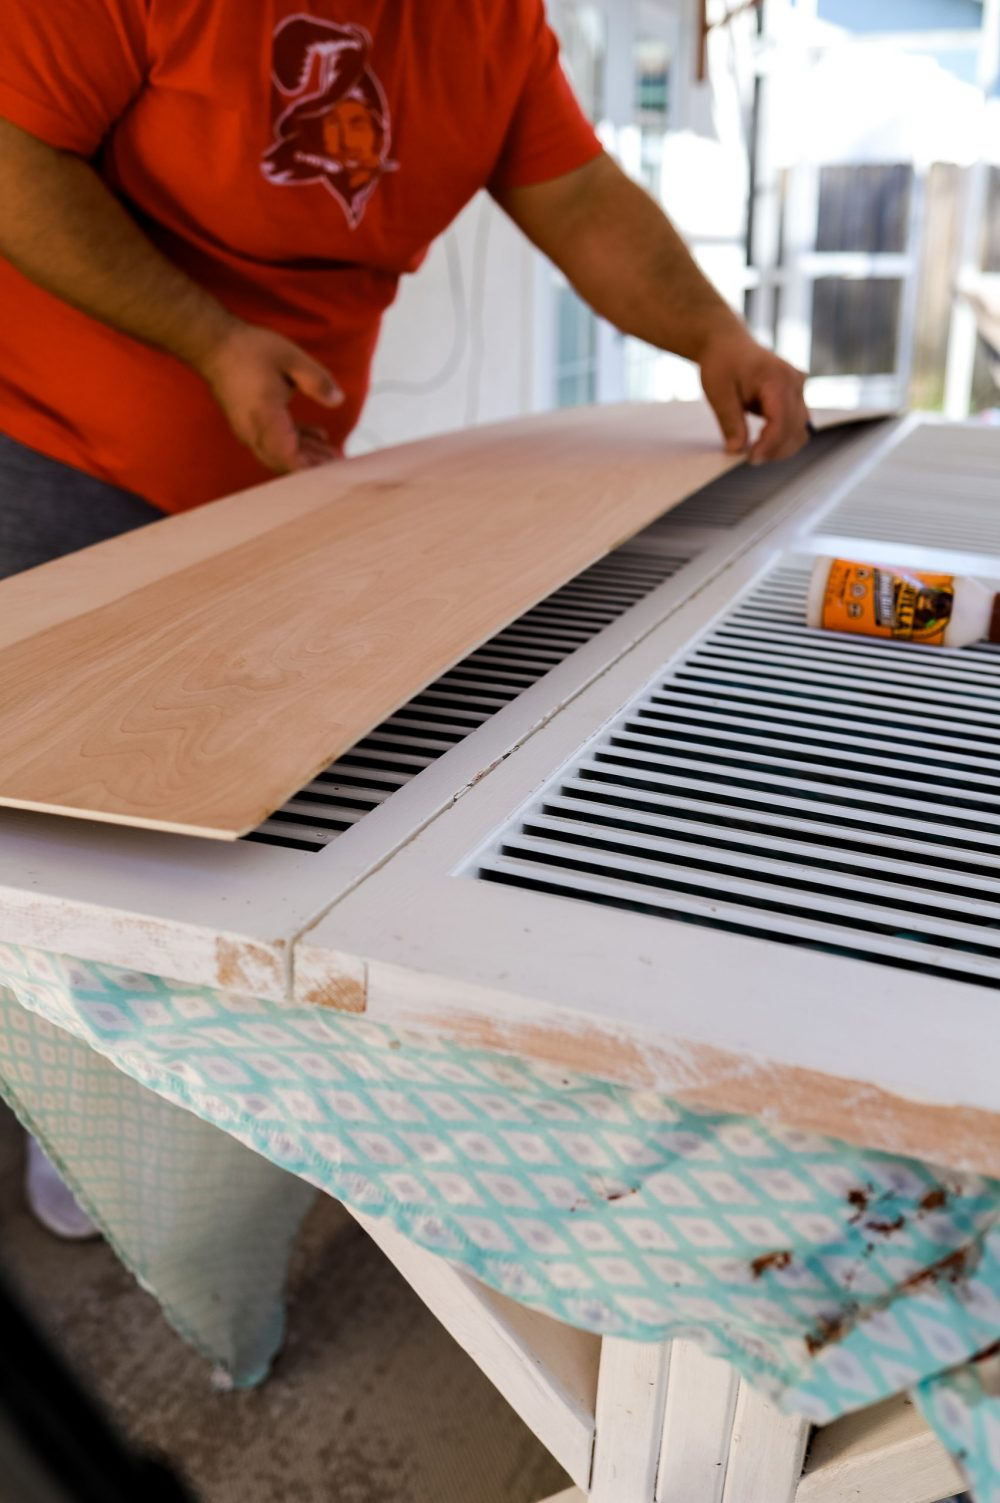 Home Refresh Ideas: DIY Closet Door Upgrade Tutorial. How to update Bi-fold closet doors on a budget. Easy how-to for updating old bifold closet doors and save money (save the hundreds it would cost to replace them!). |DIY Closet Door by popular Florida lifestyle blog, Fresh Mommy Blog: before image of a man gluing a wooden board to the front of a bifold closet door.